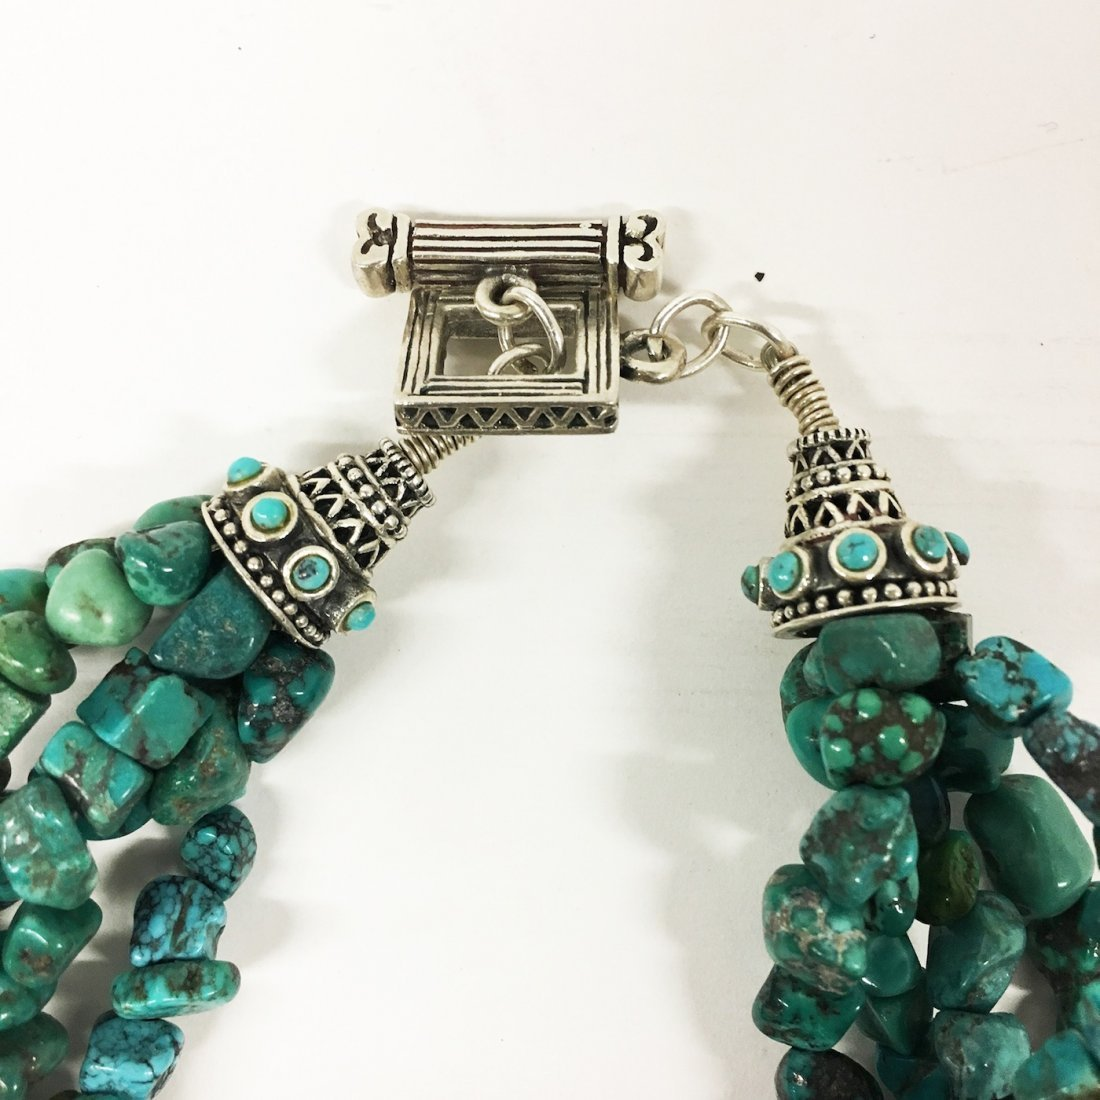 Turquoise and Sterling necklaces with gemstone accents - 4